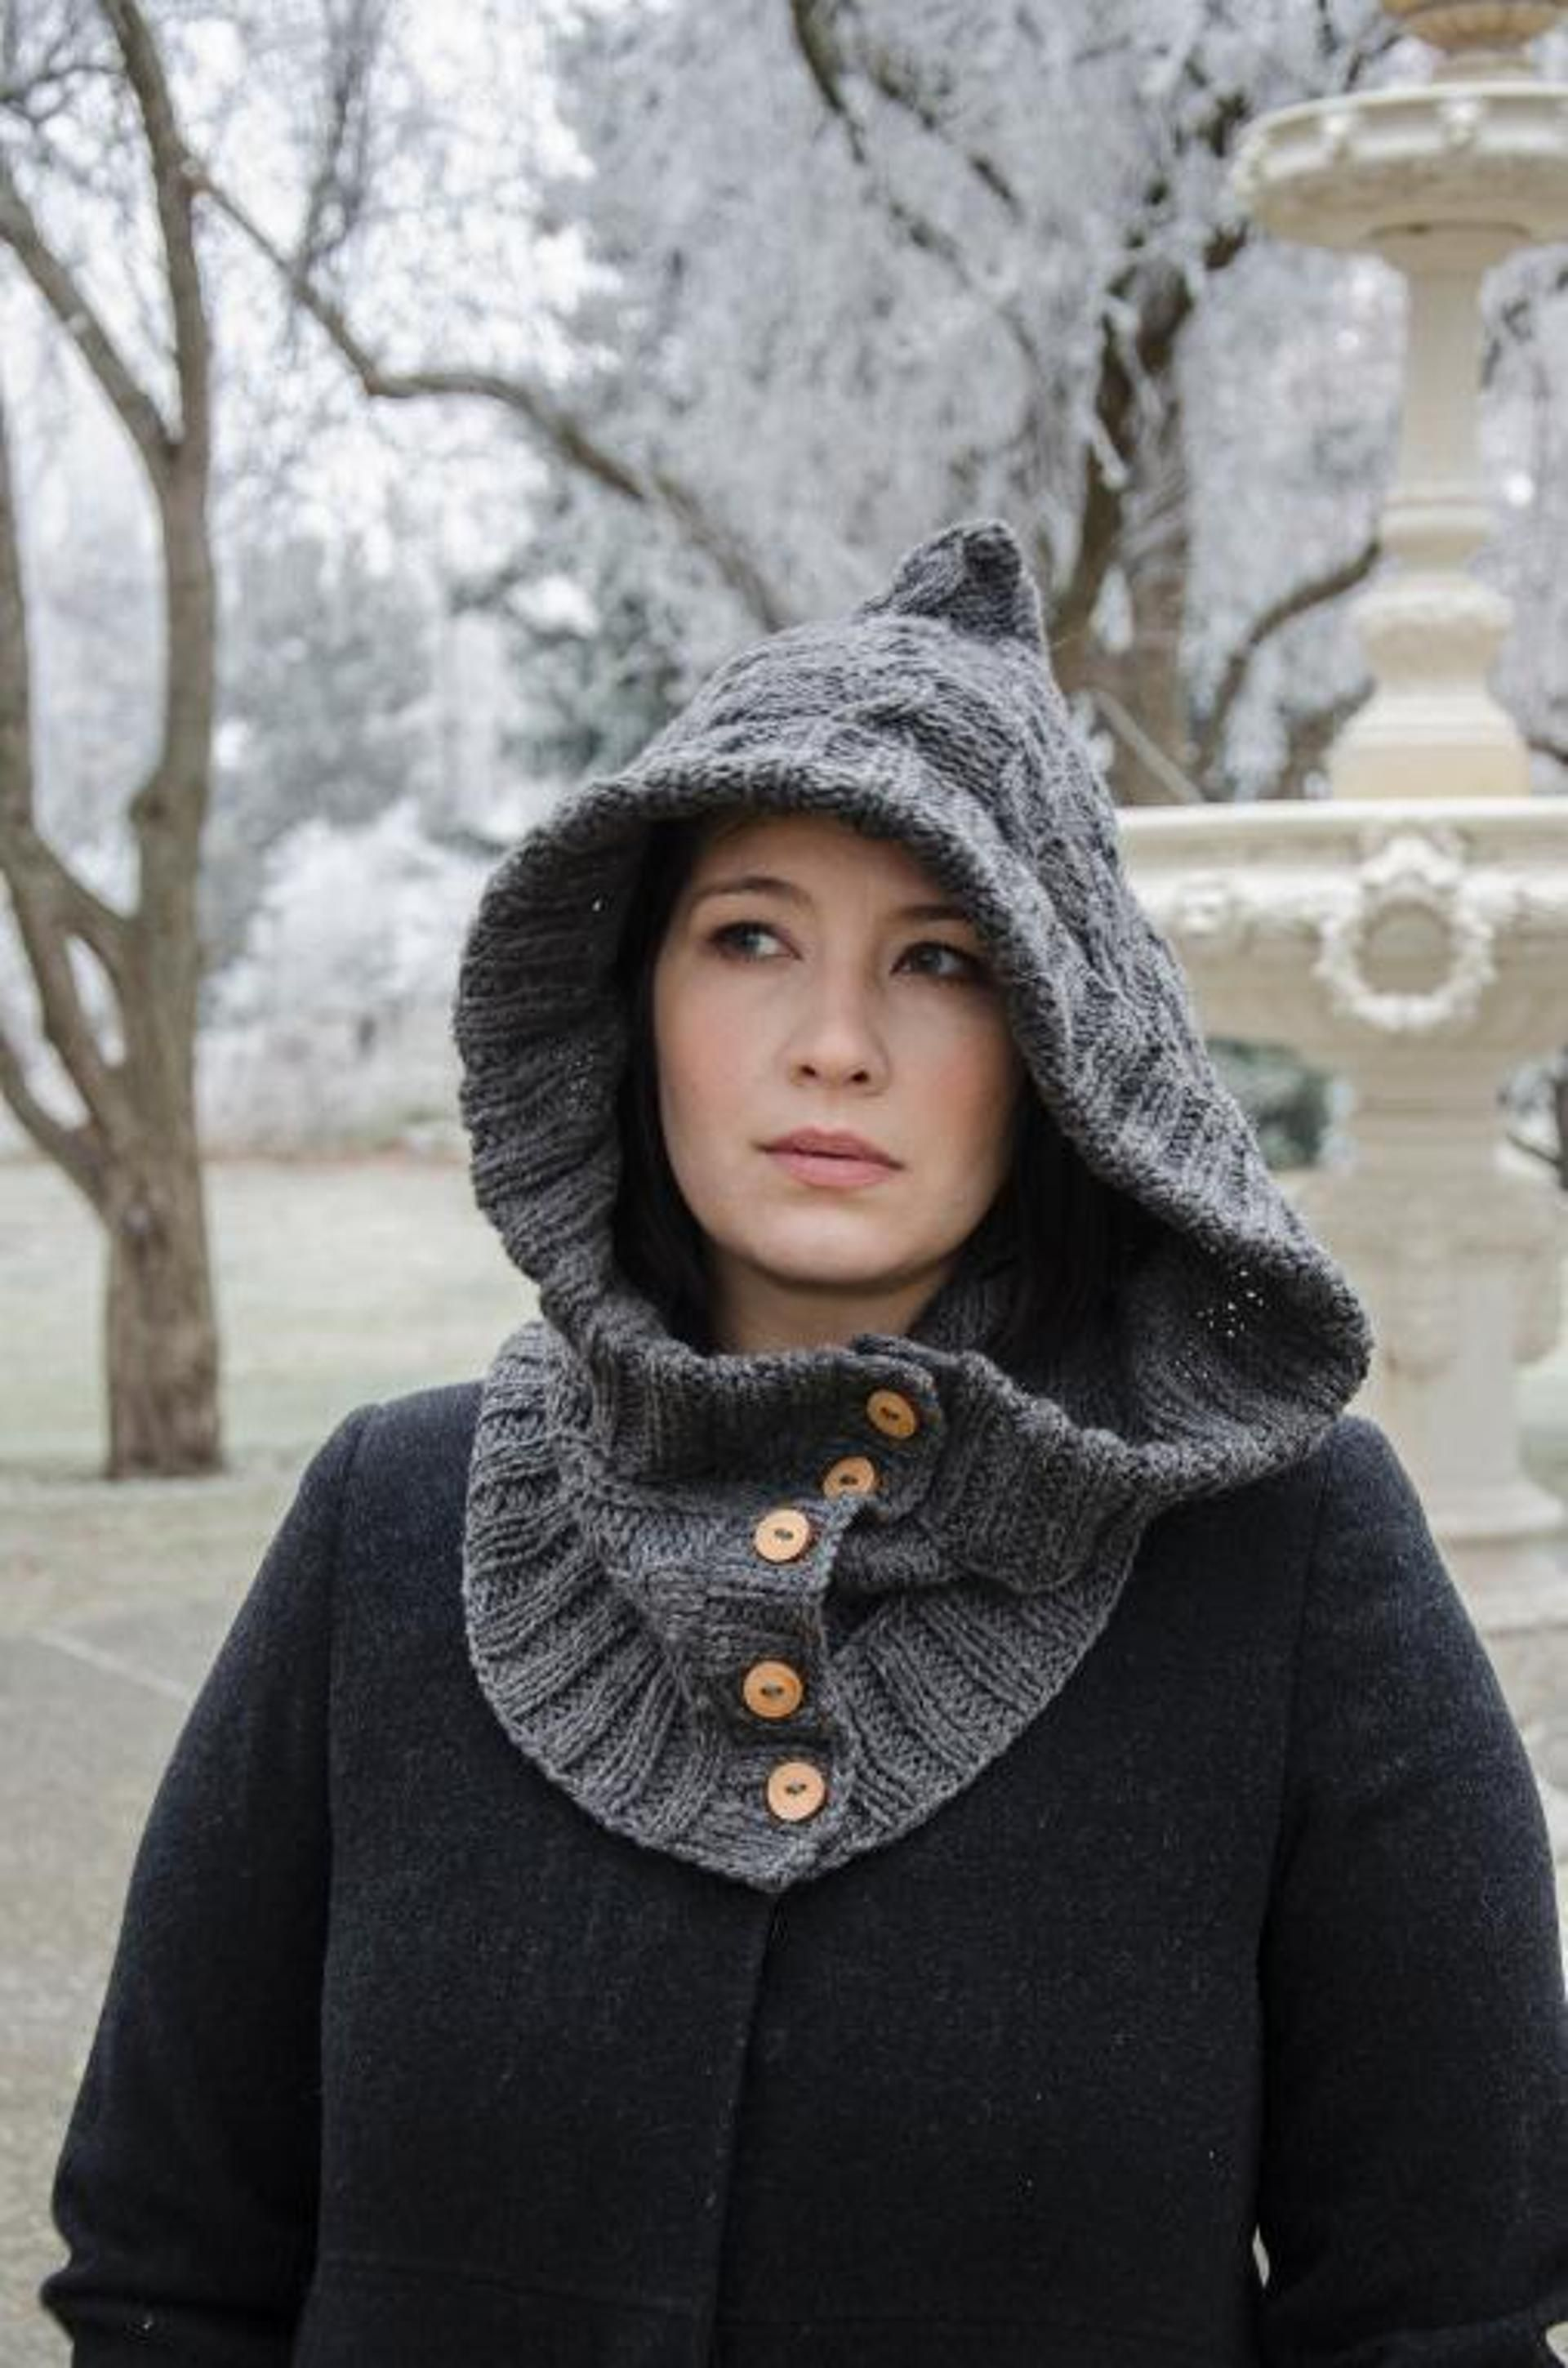 Through the Woods Hooded Neckwarmer (With images) | Neck ...